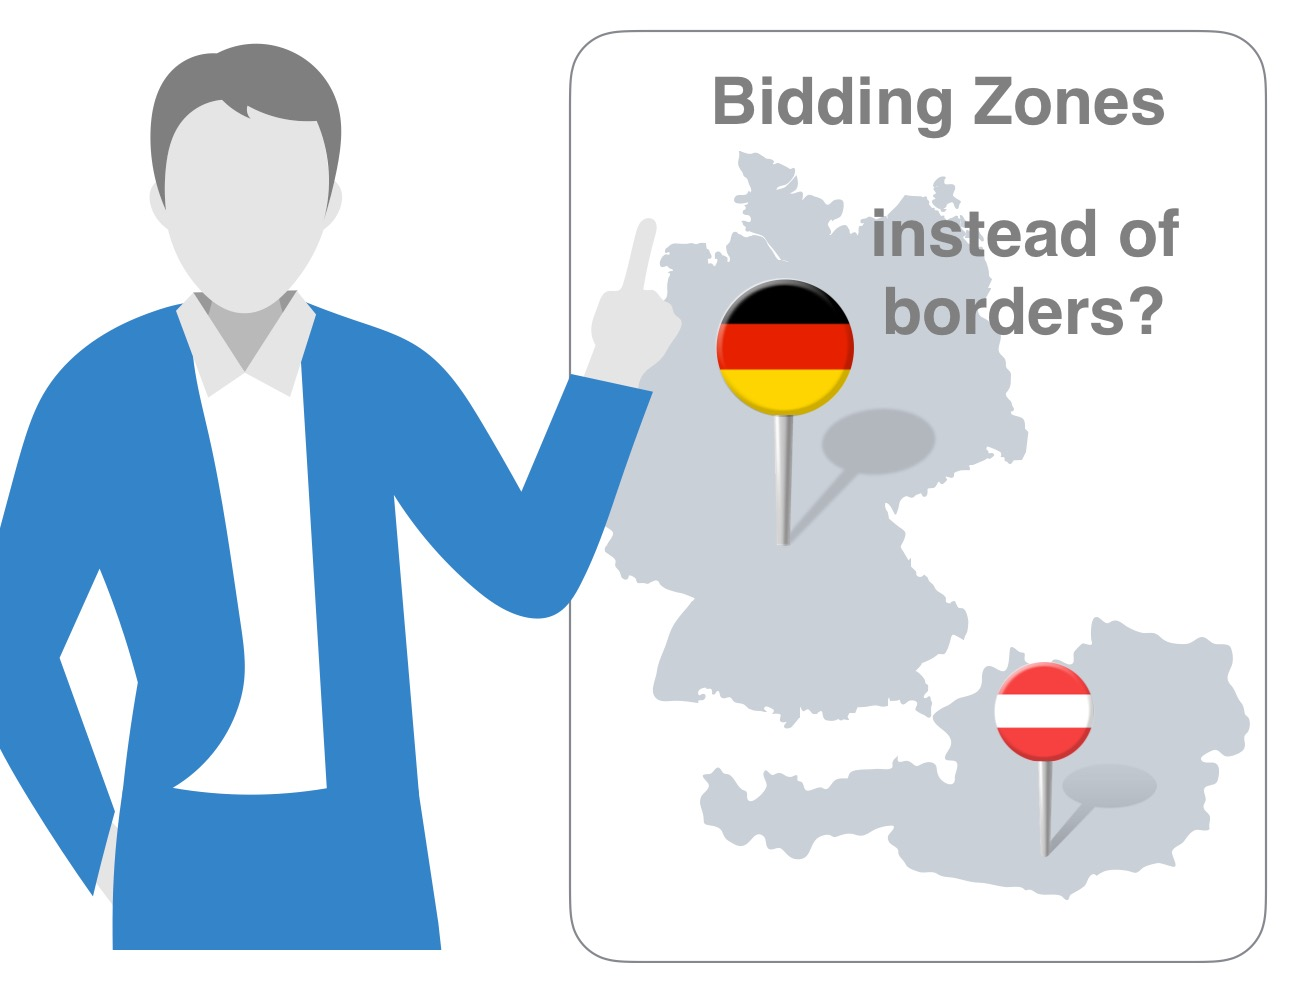 Bidding zones instead of borders